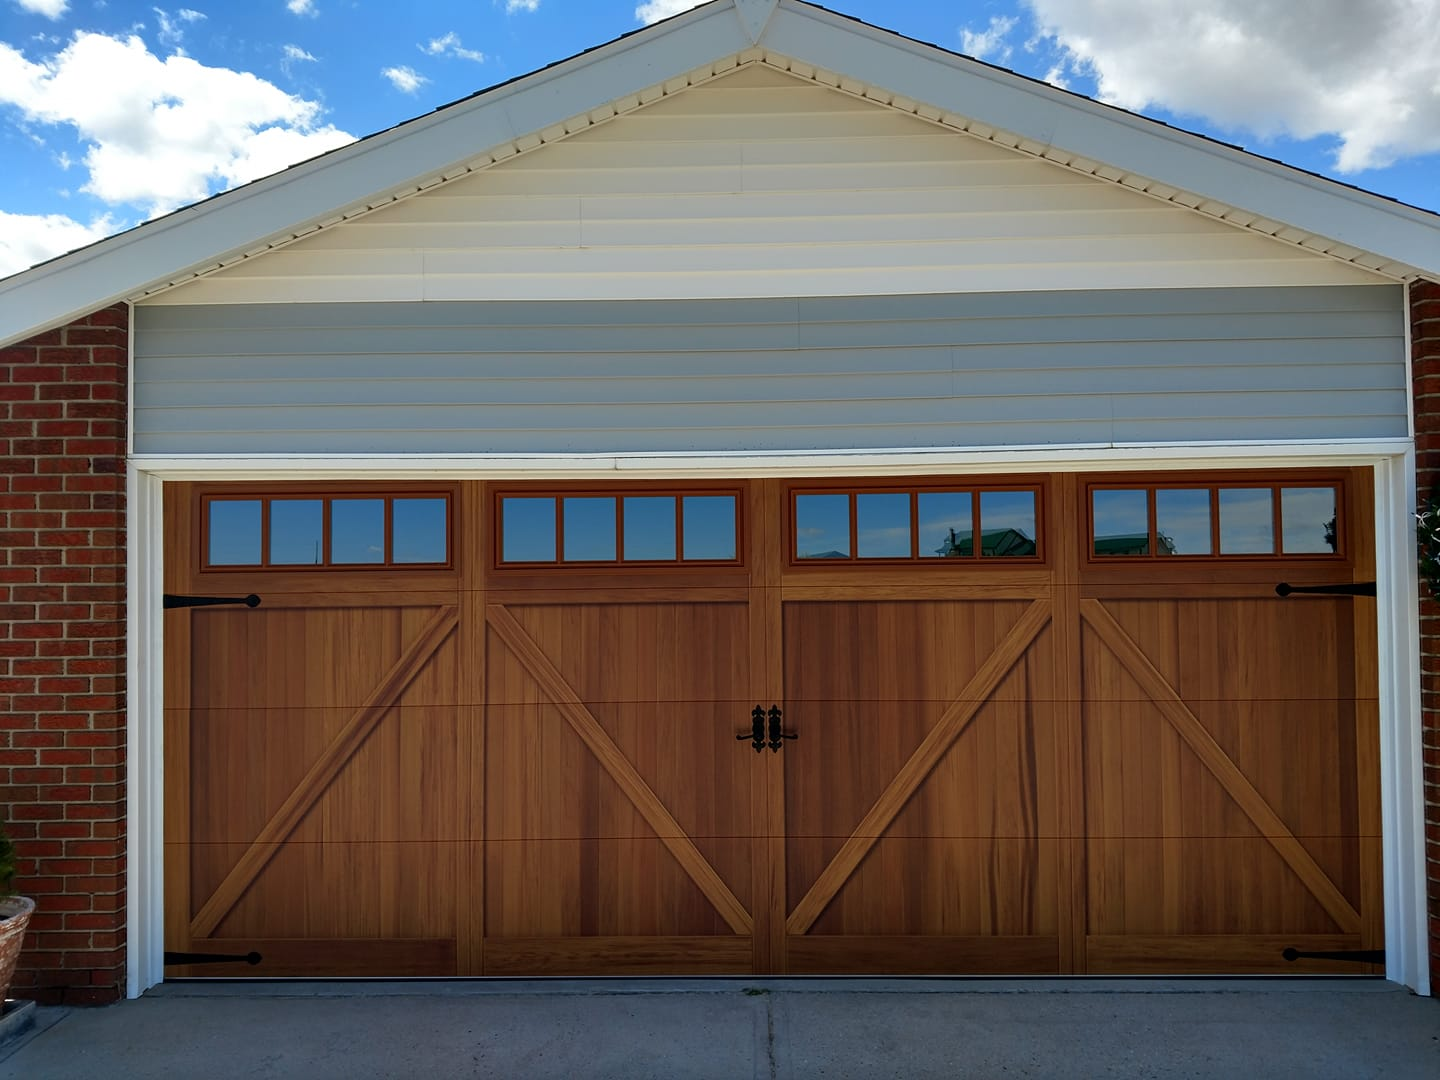 Should you repair or replace your old garage door?